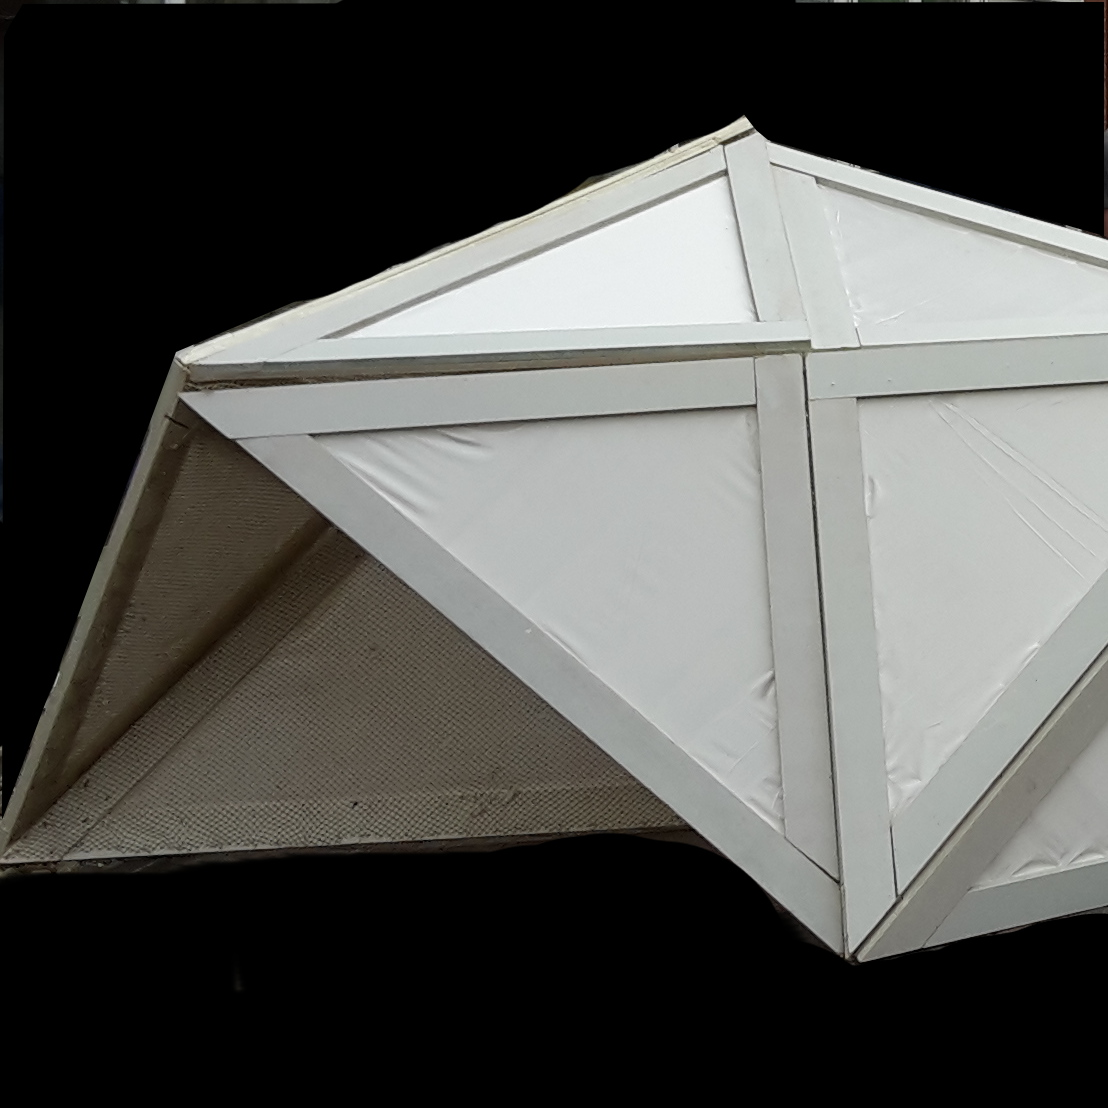 SABE-Folding structure